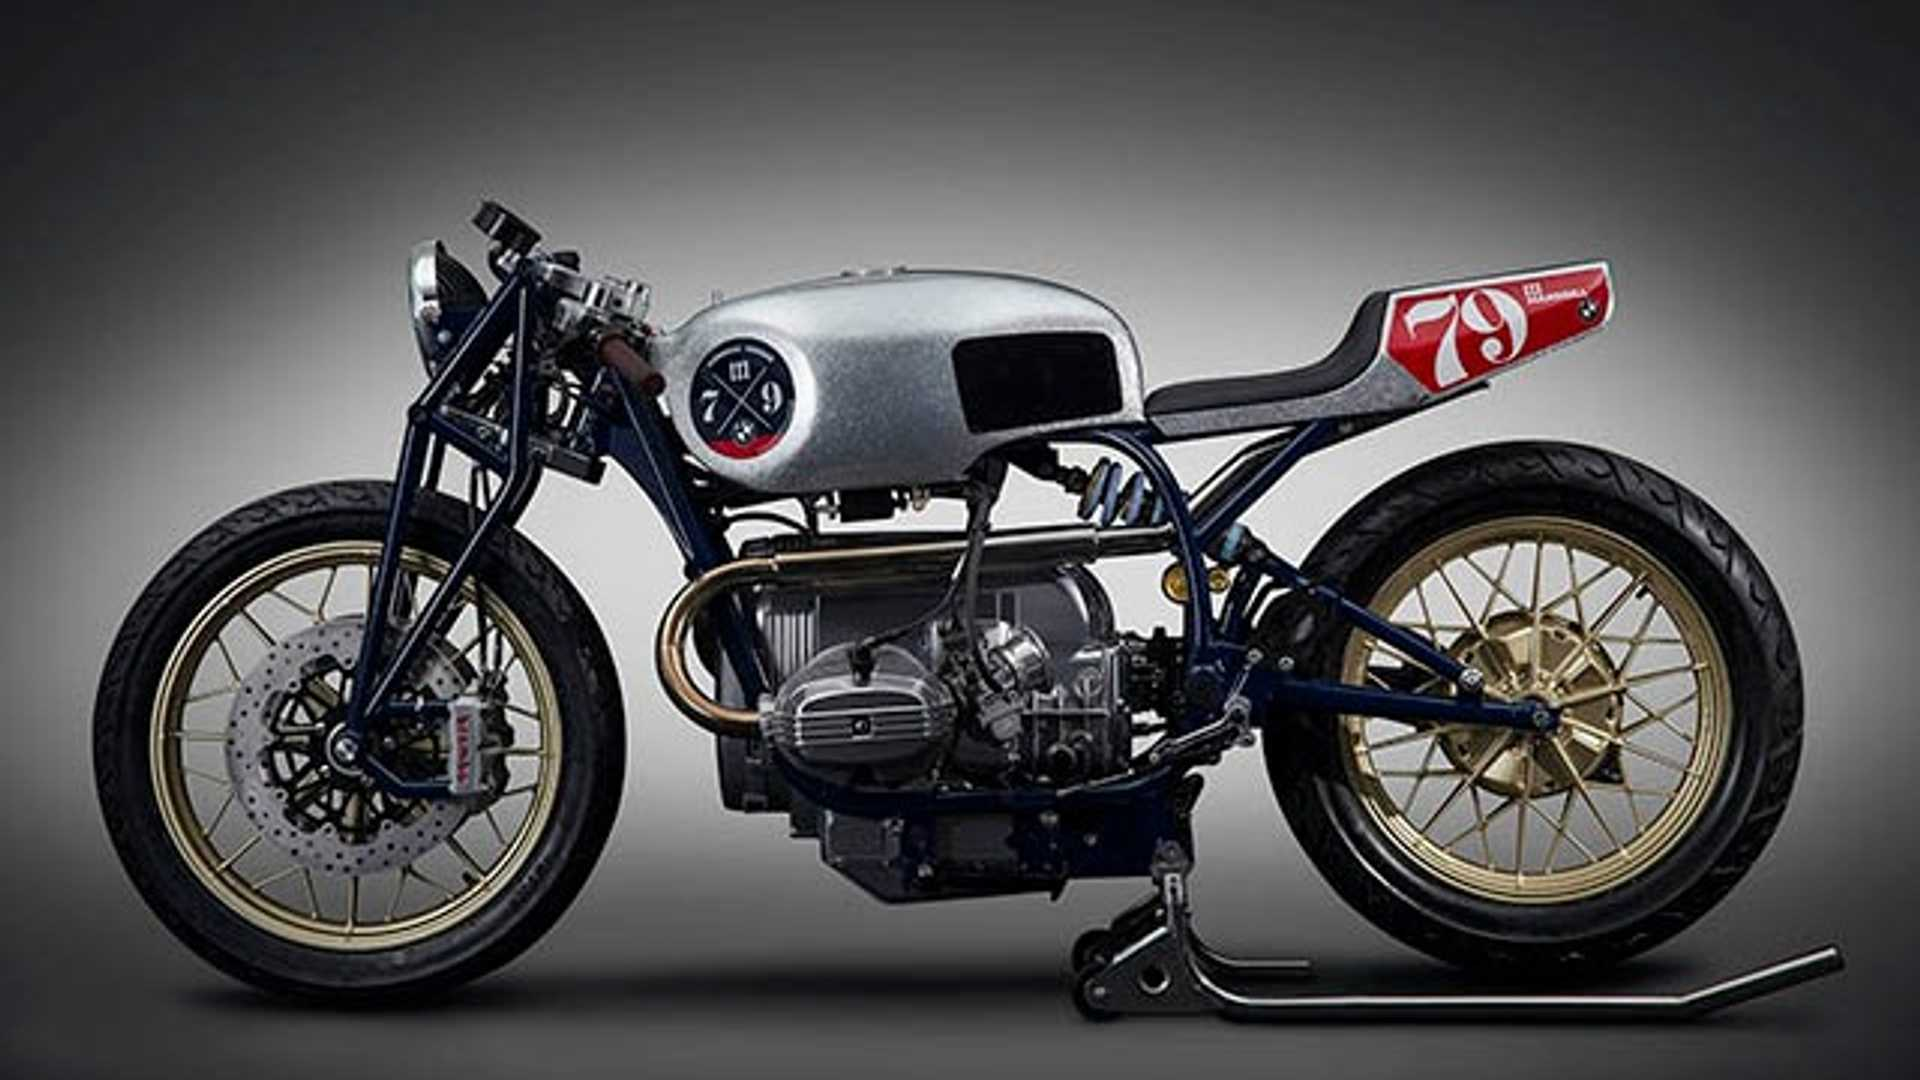 Mandrill Garage's BMW R80 Build Is A Showstopper